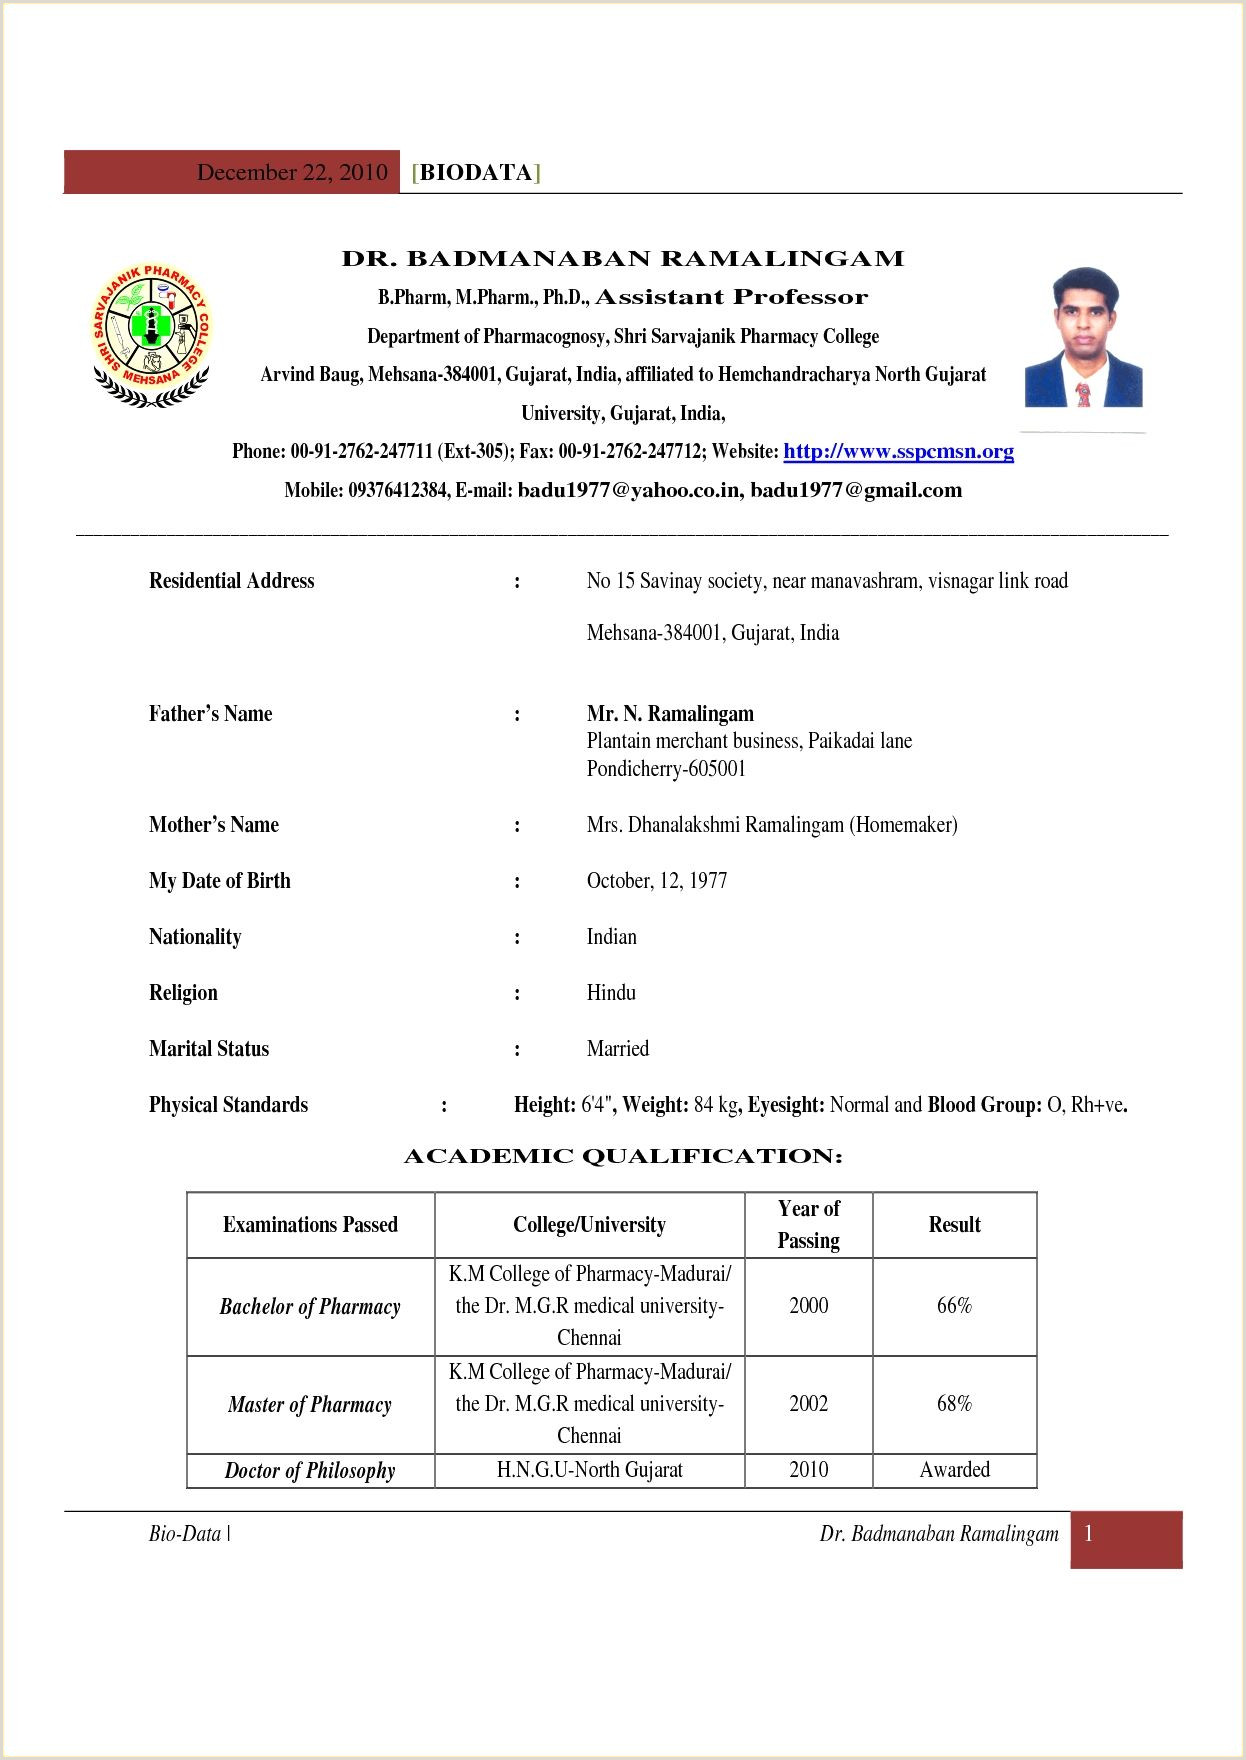 Fresher Teacher Resume Format Download Pdf D Pharmacy Resume Format For Fresher